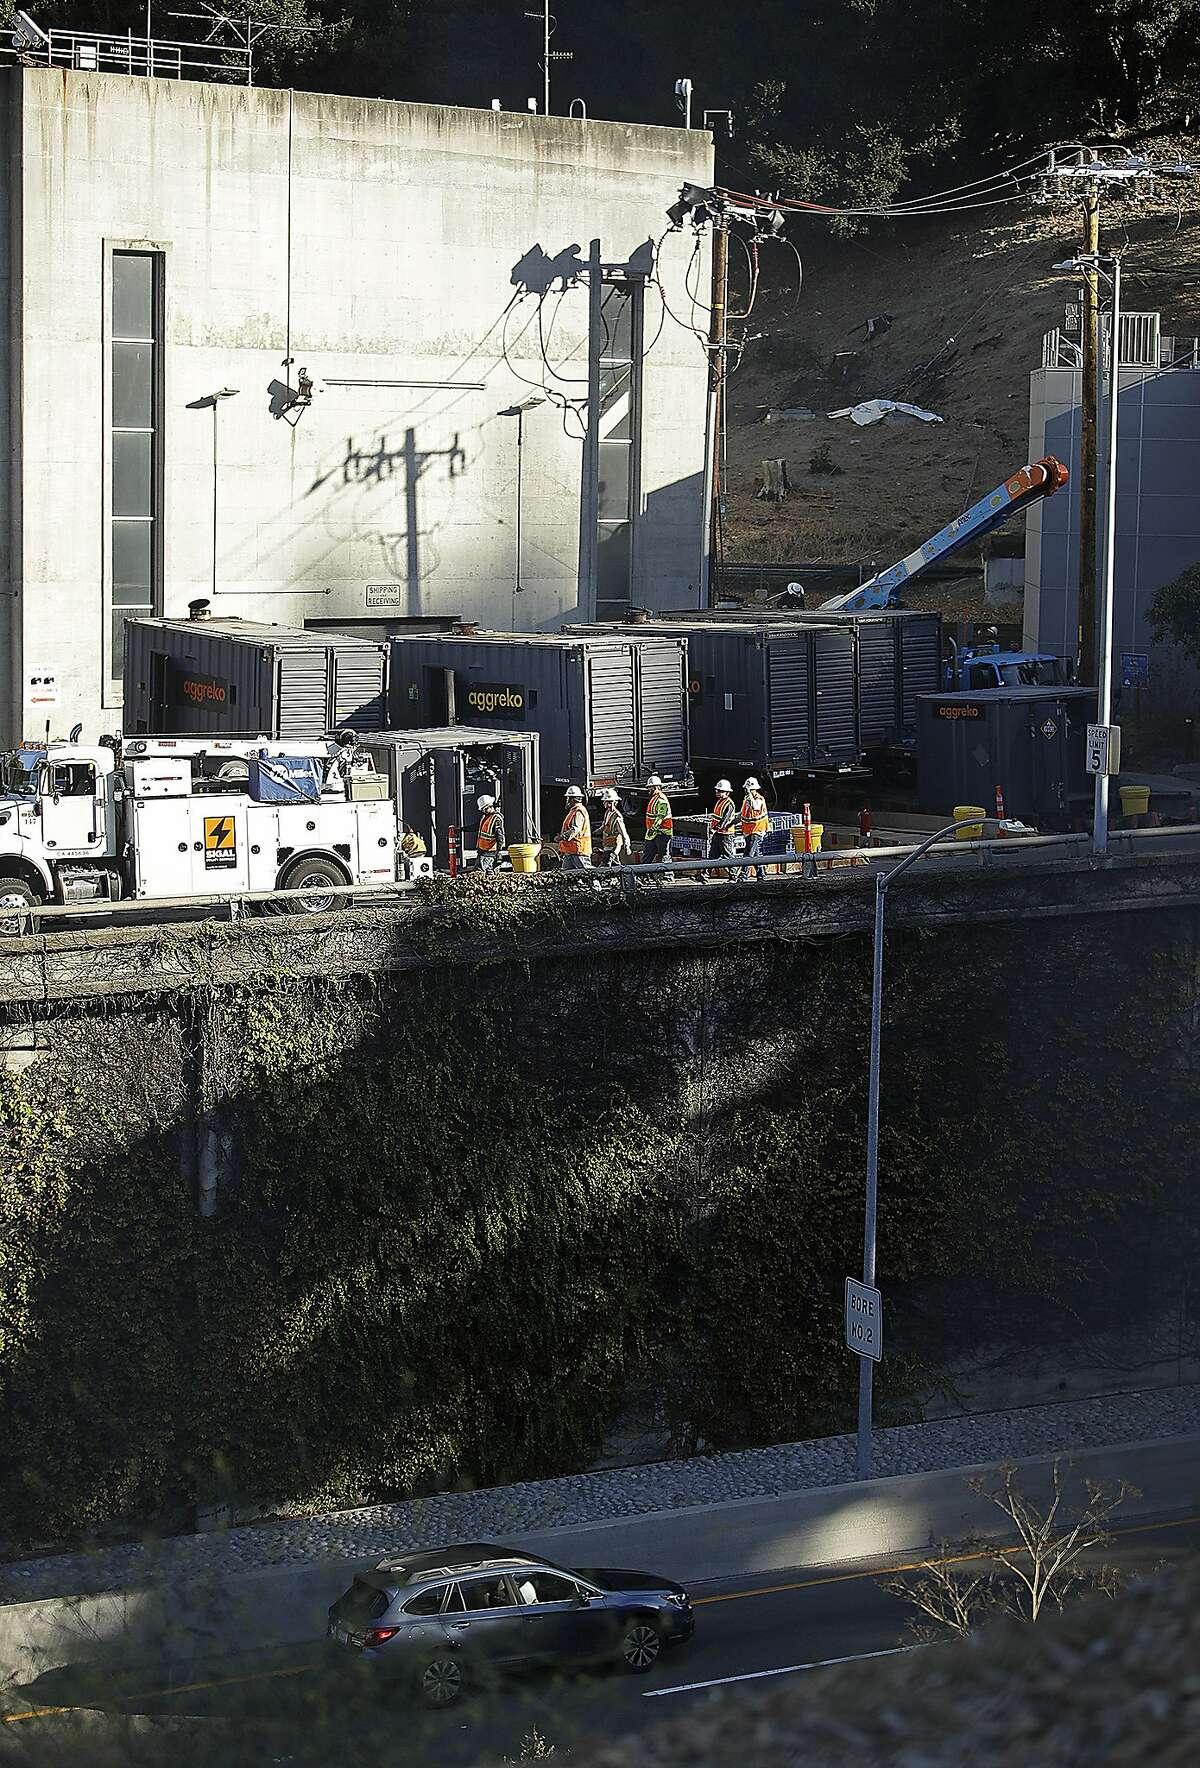 Crews work to connect generators at the Caldecott Tunnel on Wednesday, Oct. 9, 2019, in Oakland, Calif. Pacific Gas & Electric has cut power to more than half a million customers in Northern California hoping to prevent wildfires during dry, windy weather throughout the region. (AP Photo/Ben Margot)